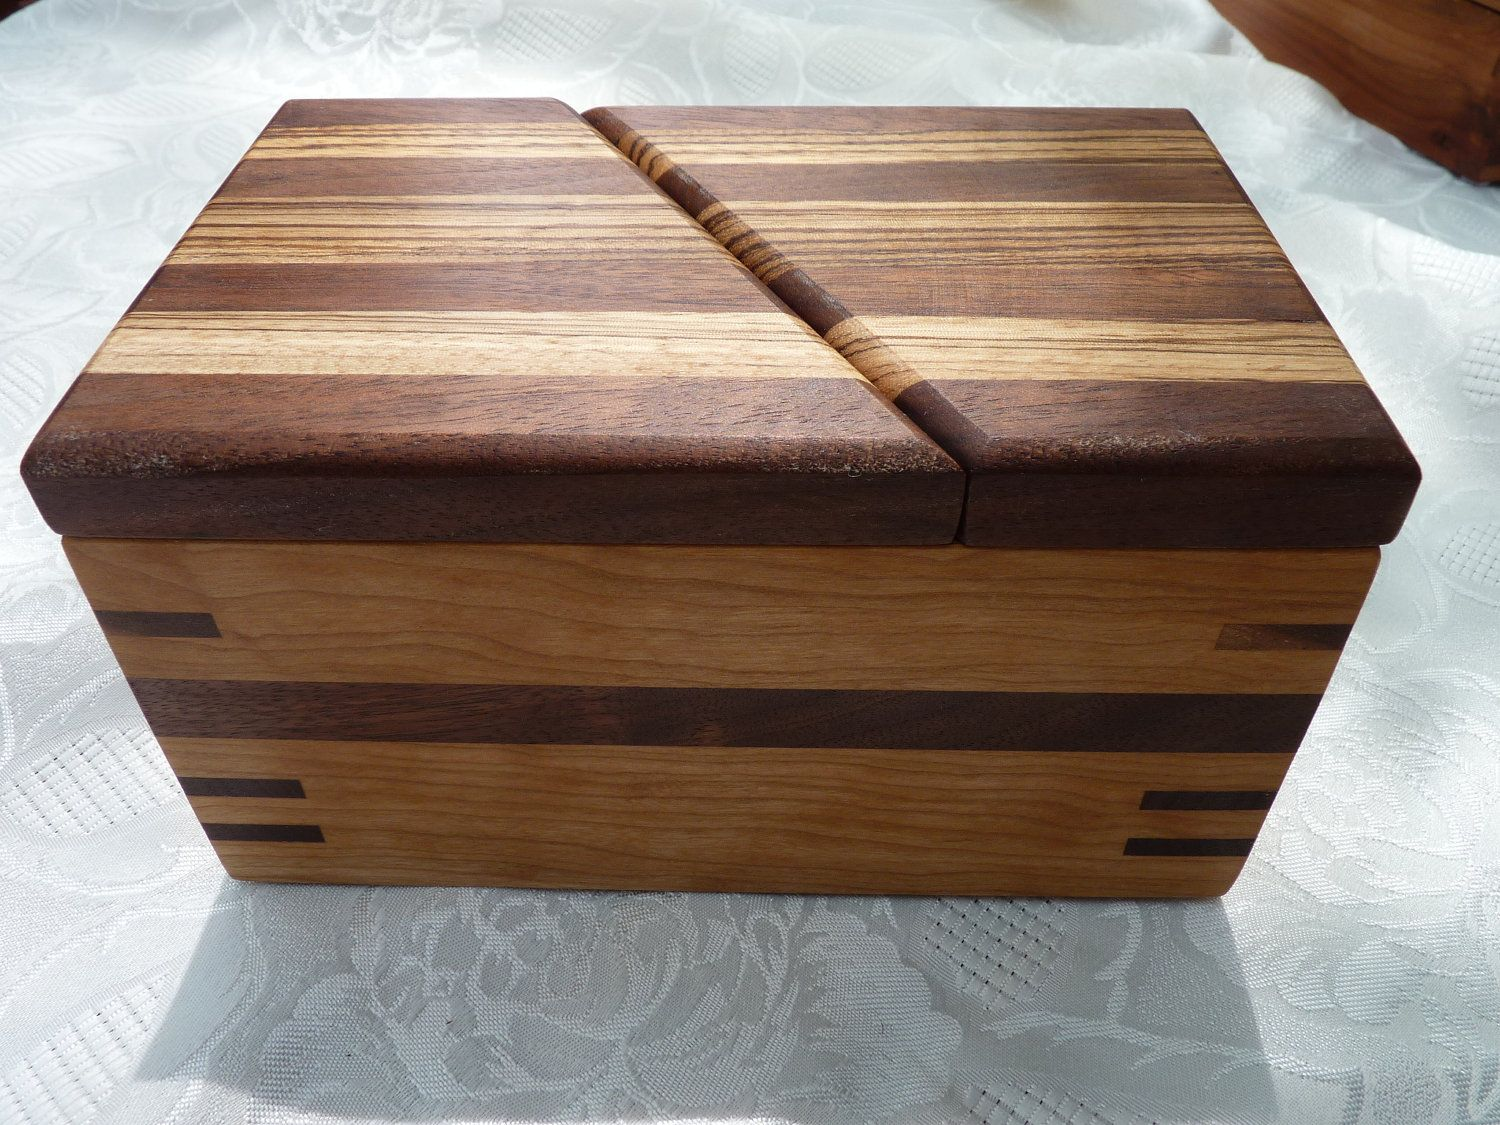 Handcrafted wood jewelry boxes - Handcrafted Wooden Jewelry Keepsake Box In Cherry With Swivel Top Lid In Walnut And Zebrawood